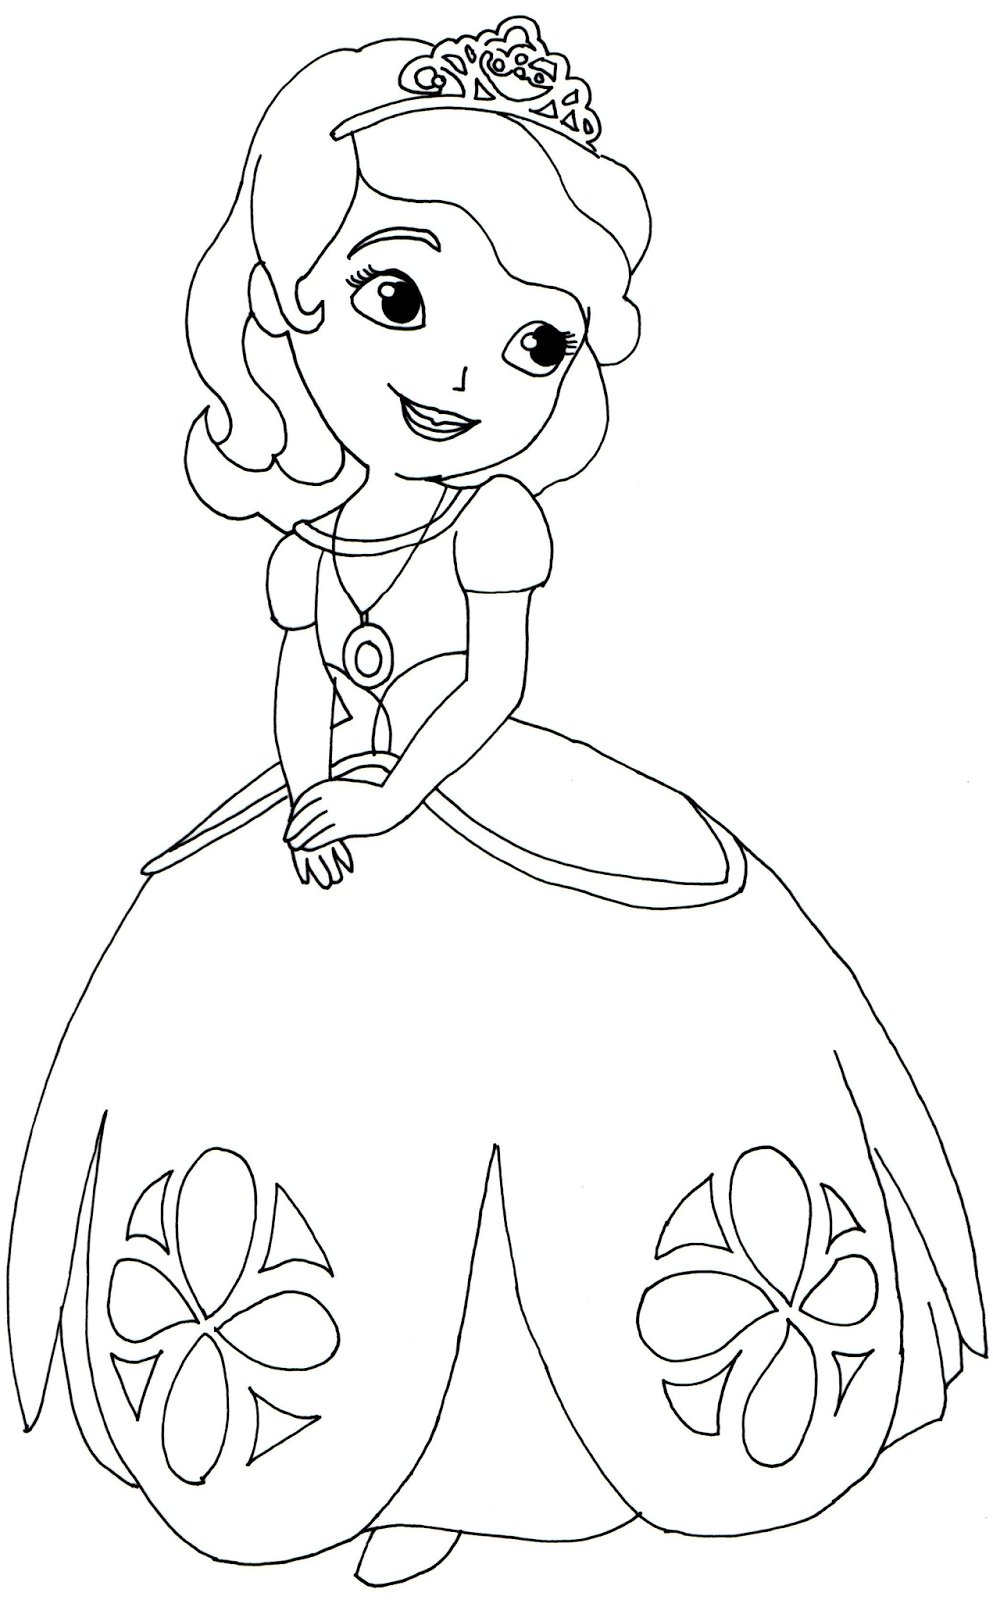 Sofia The First Coloring Pages: March 2014 | free printable princess sofia coloring pages